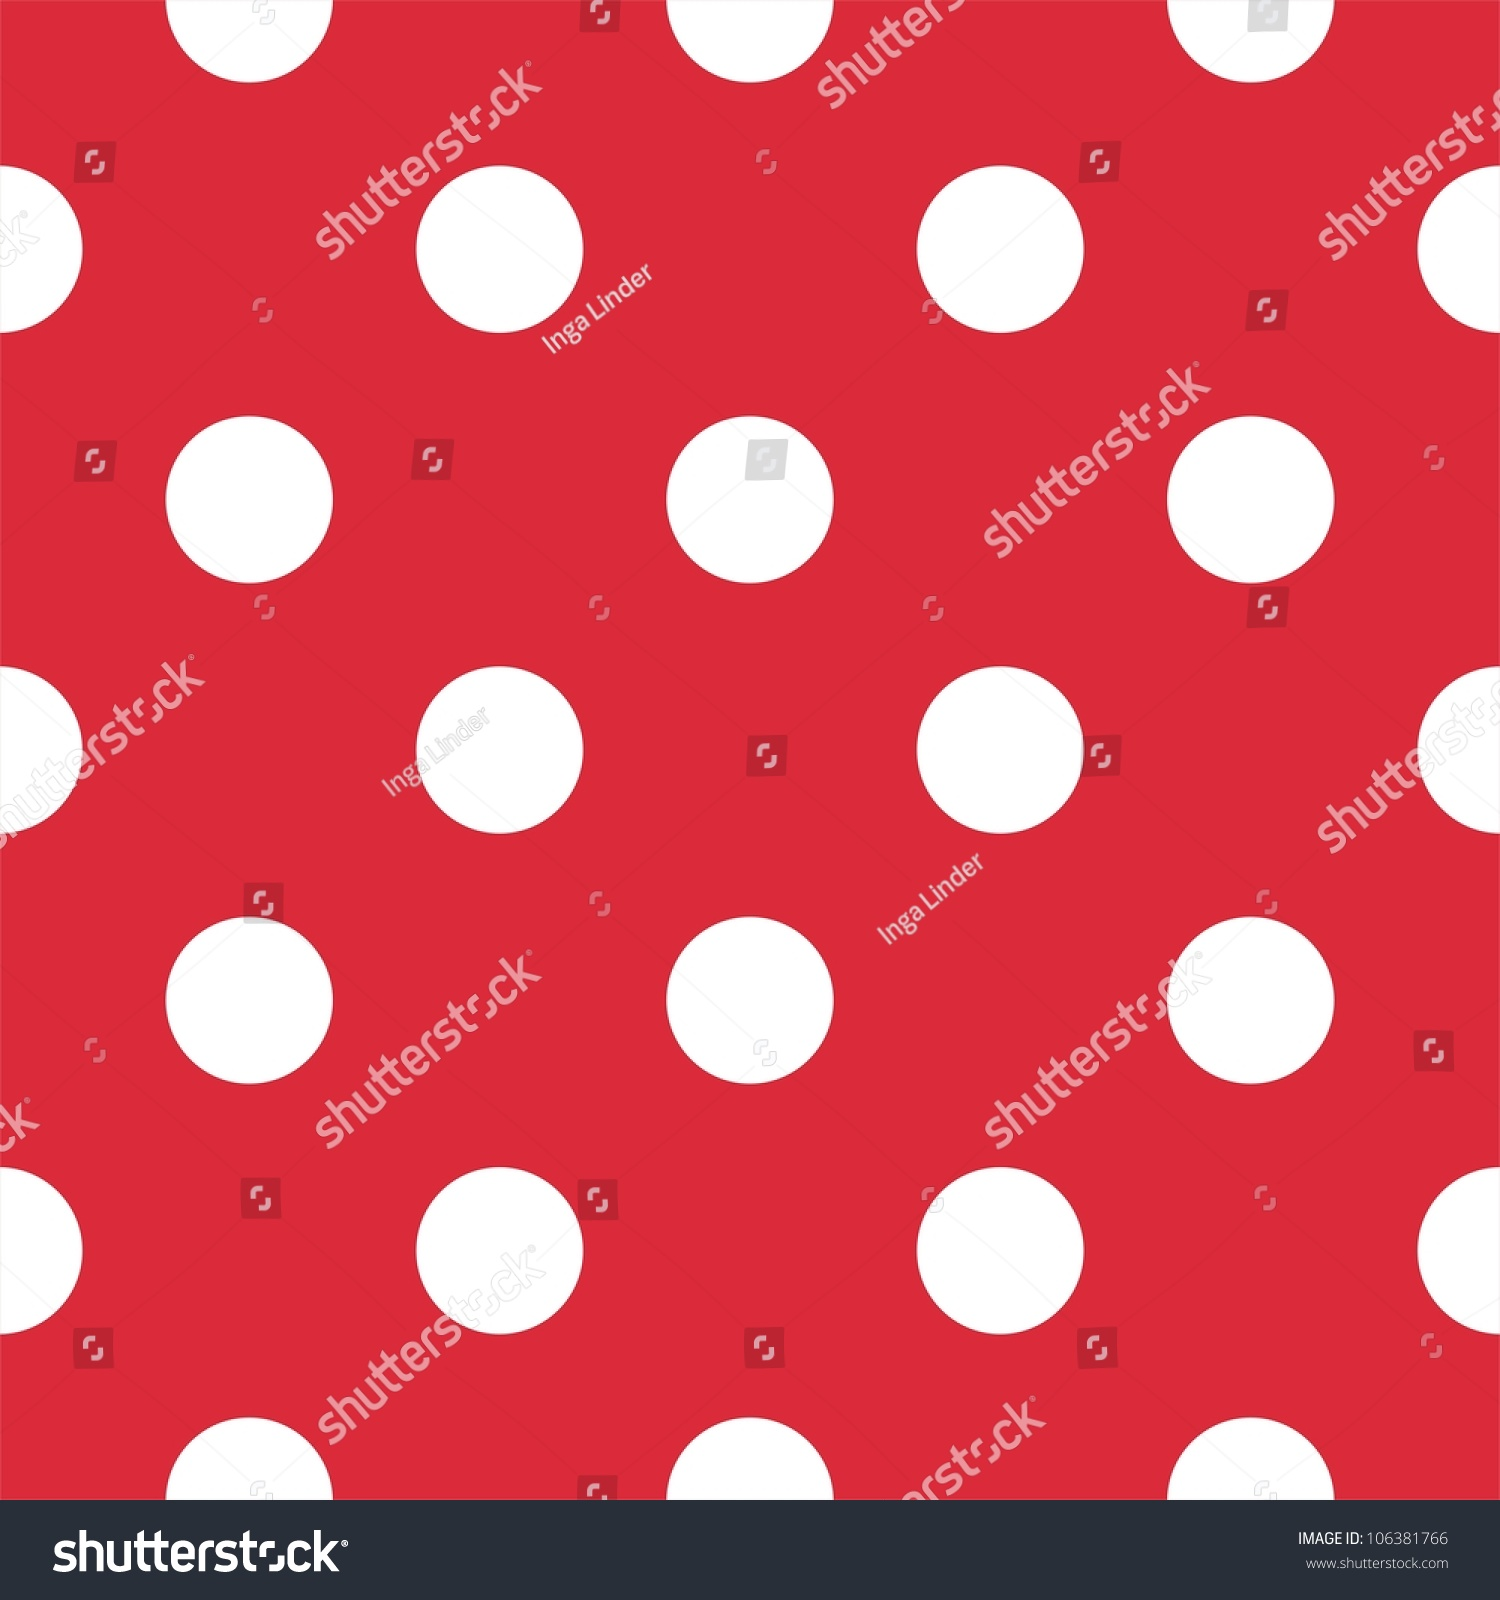 Retro Pattern With Big White Polka Dots On Red Background For Decoration Wallpaper